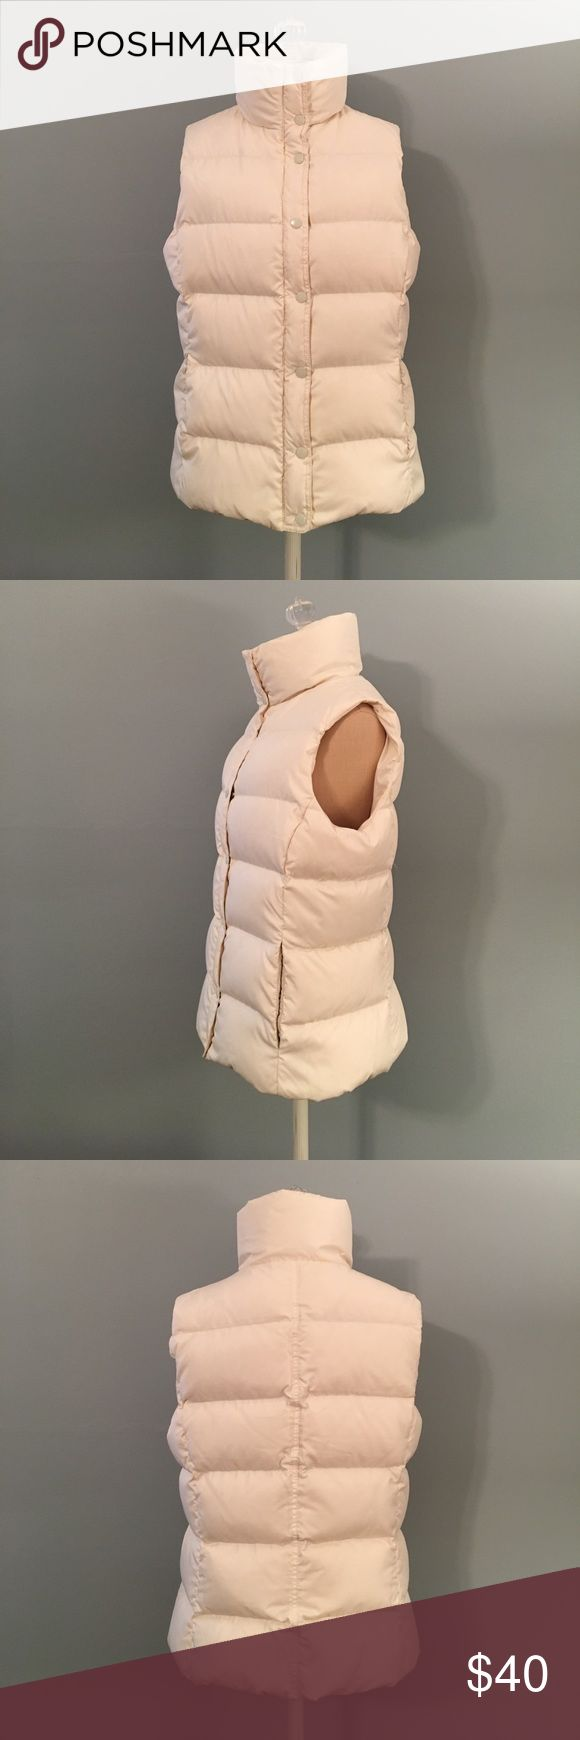 Women's White J. Crew Puffer Vest Women's White J. Crew Puffer Vest. Size Medium. Used but still in very good condition. Zips up and snap buttons closure. 2 side pockets each with a snap button closure. NO TRADES! J. Crew Jackets & Coats Vests